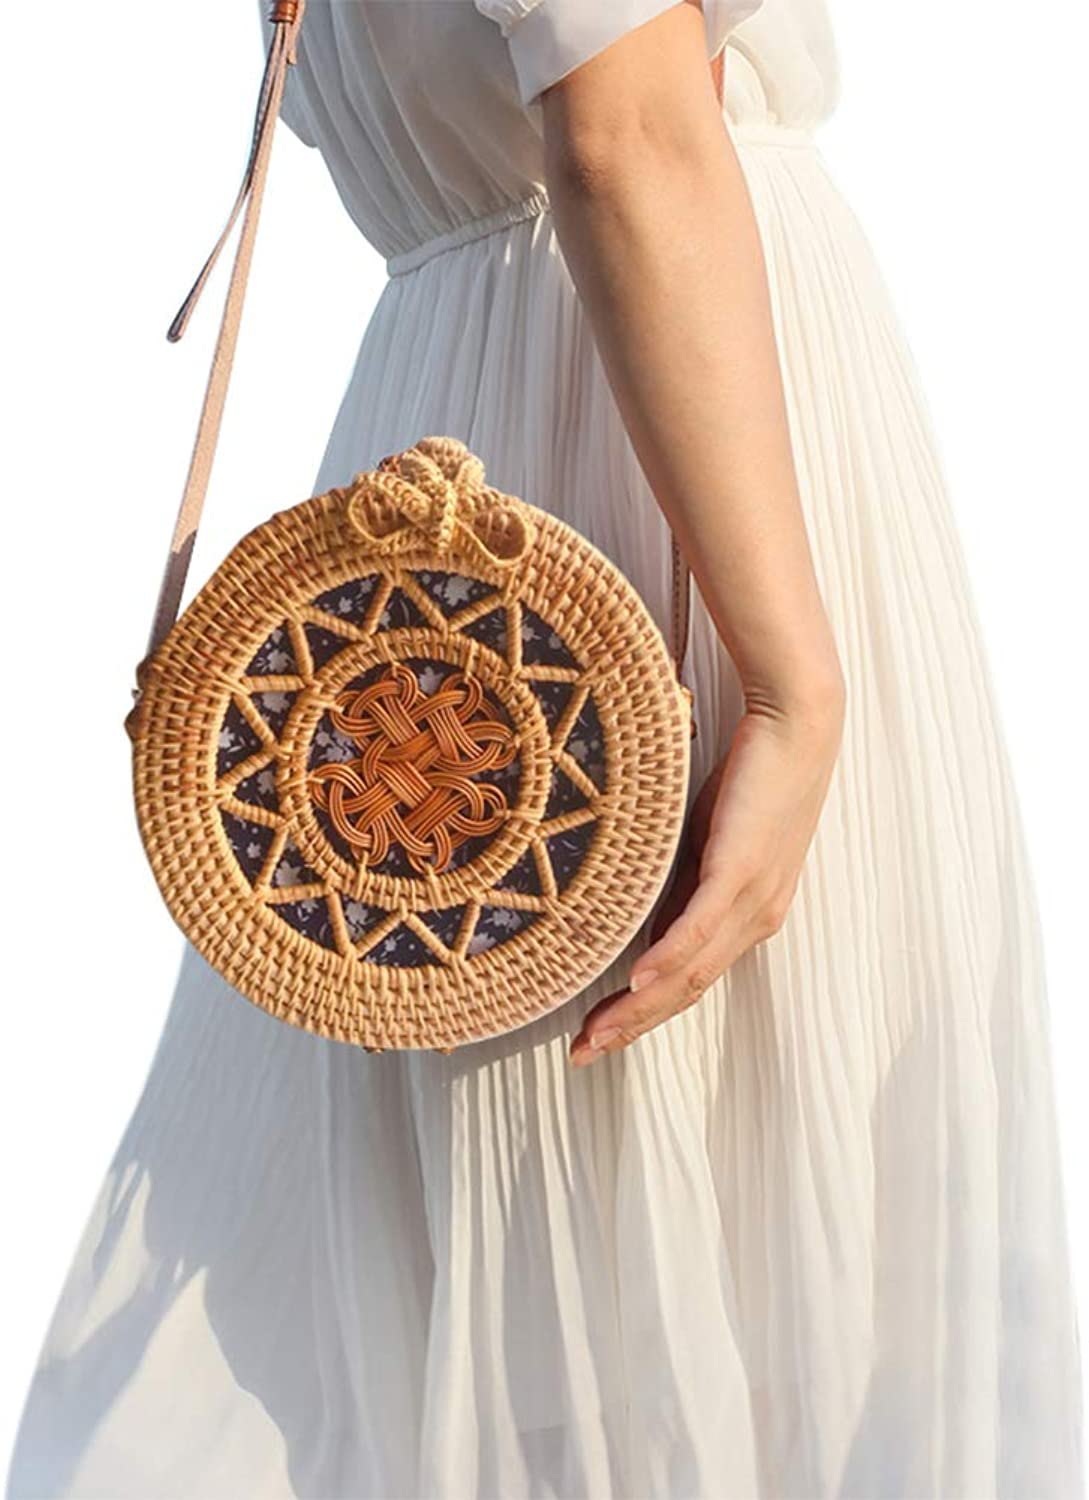 Handwoven Round Rattan Hollow Shoulder Bag With Leather Strap & Bow Button